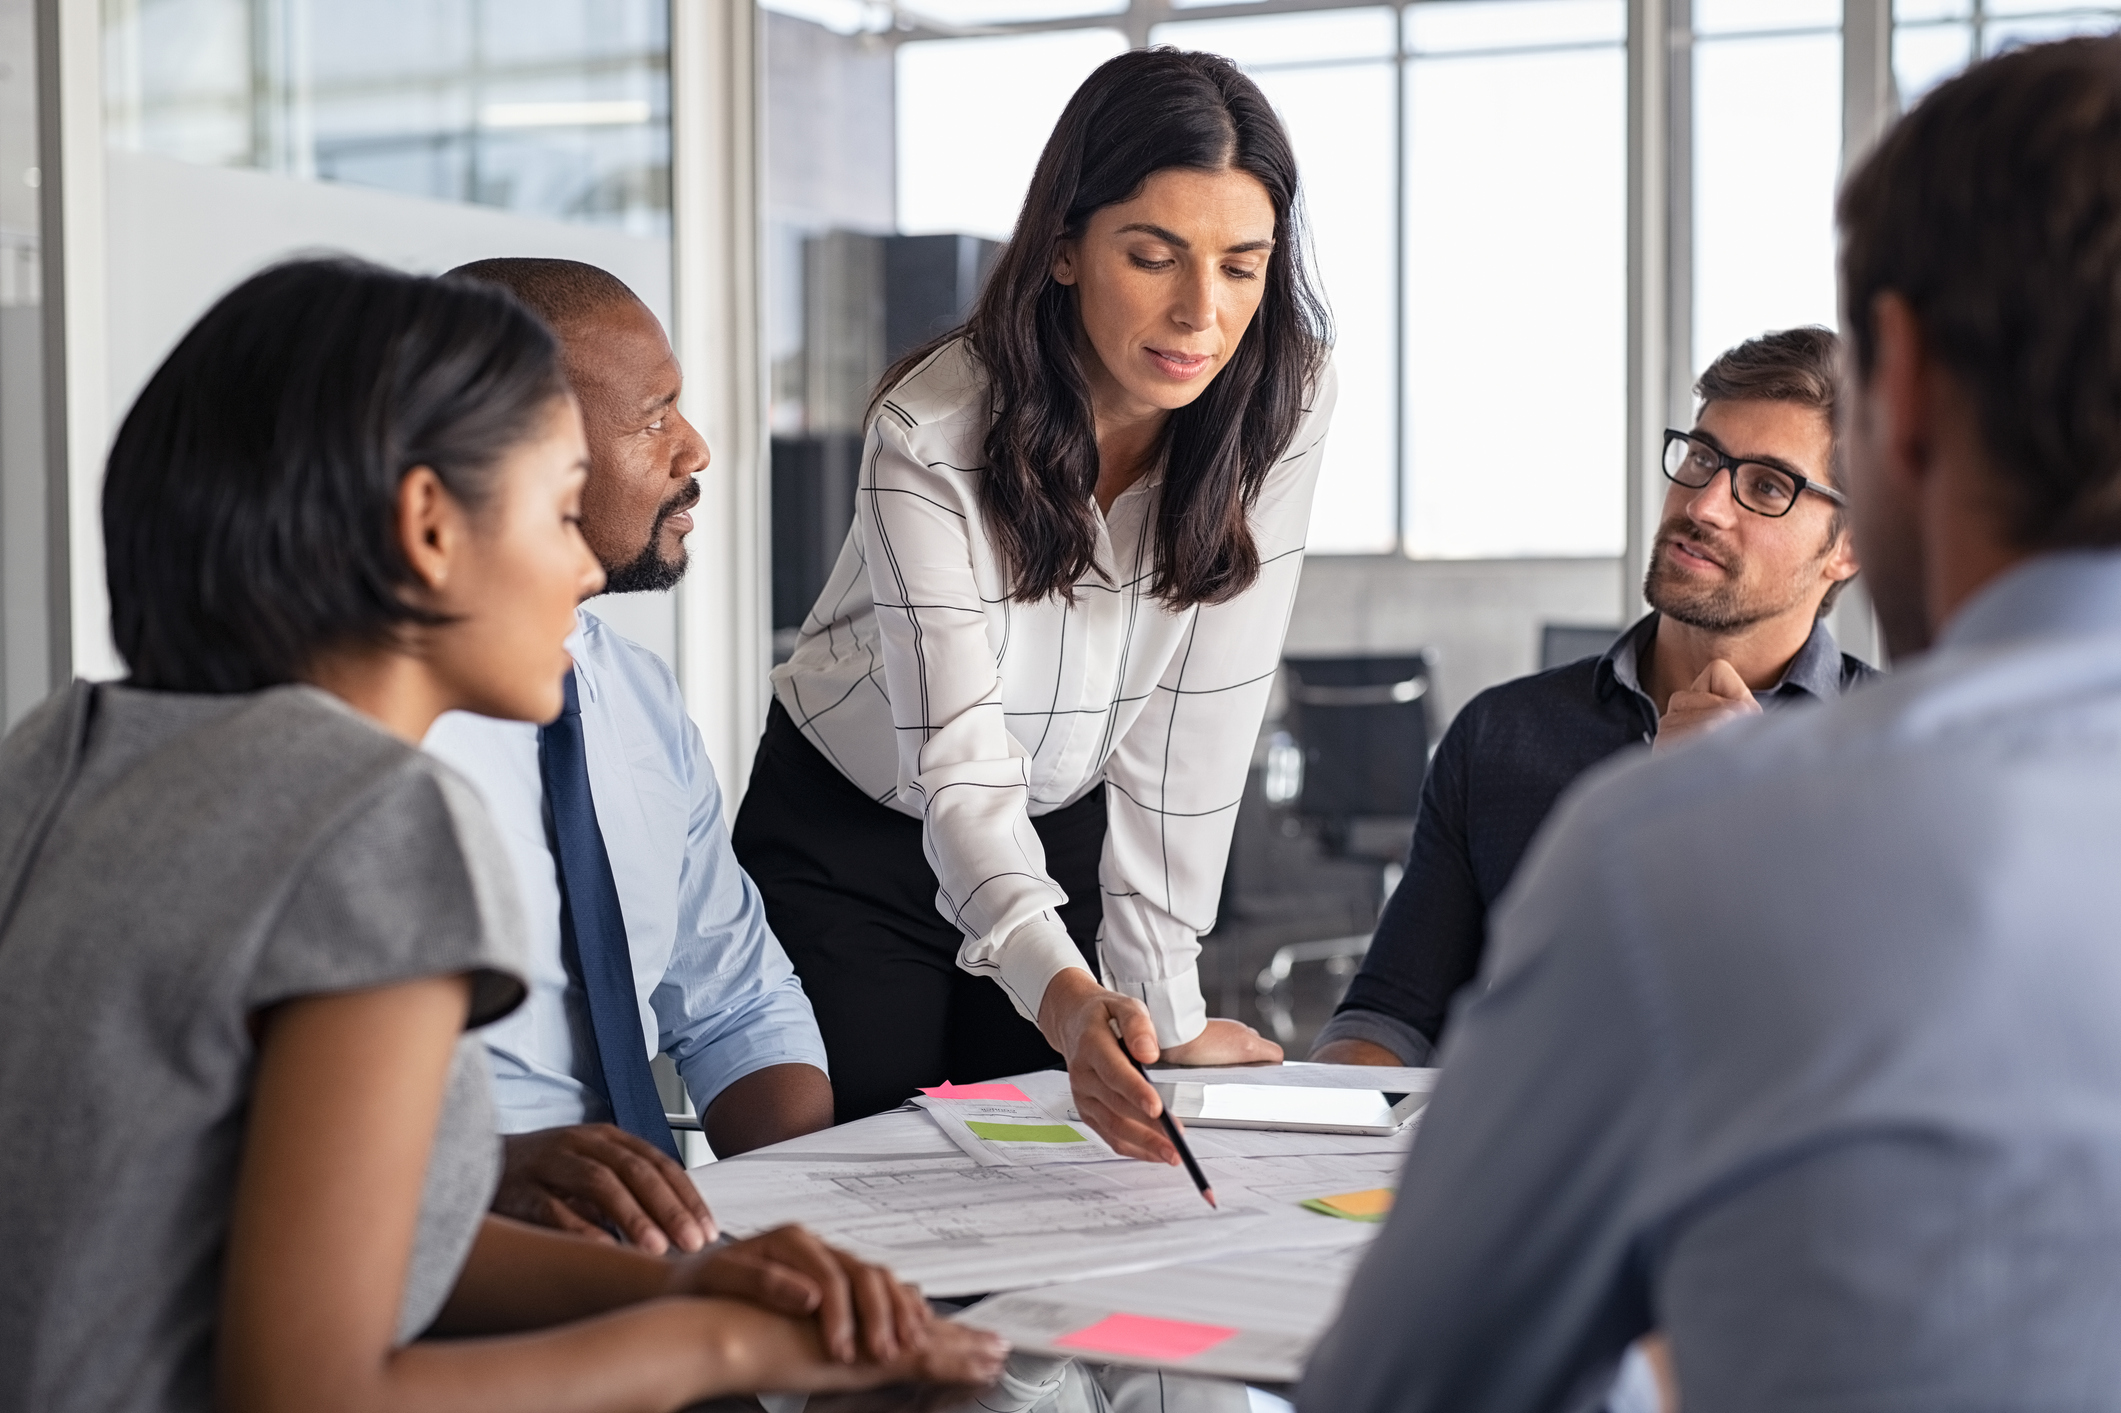 Project Manager for 2021: Manager and Leader